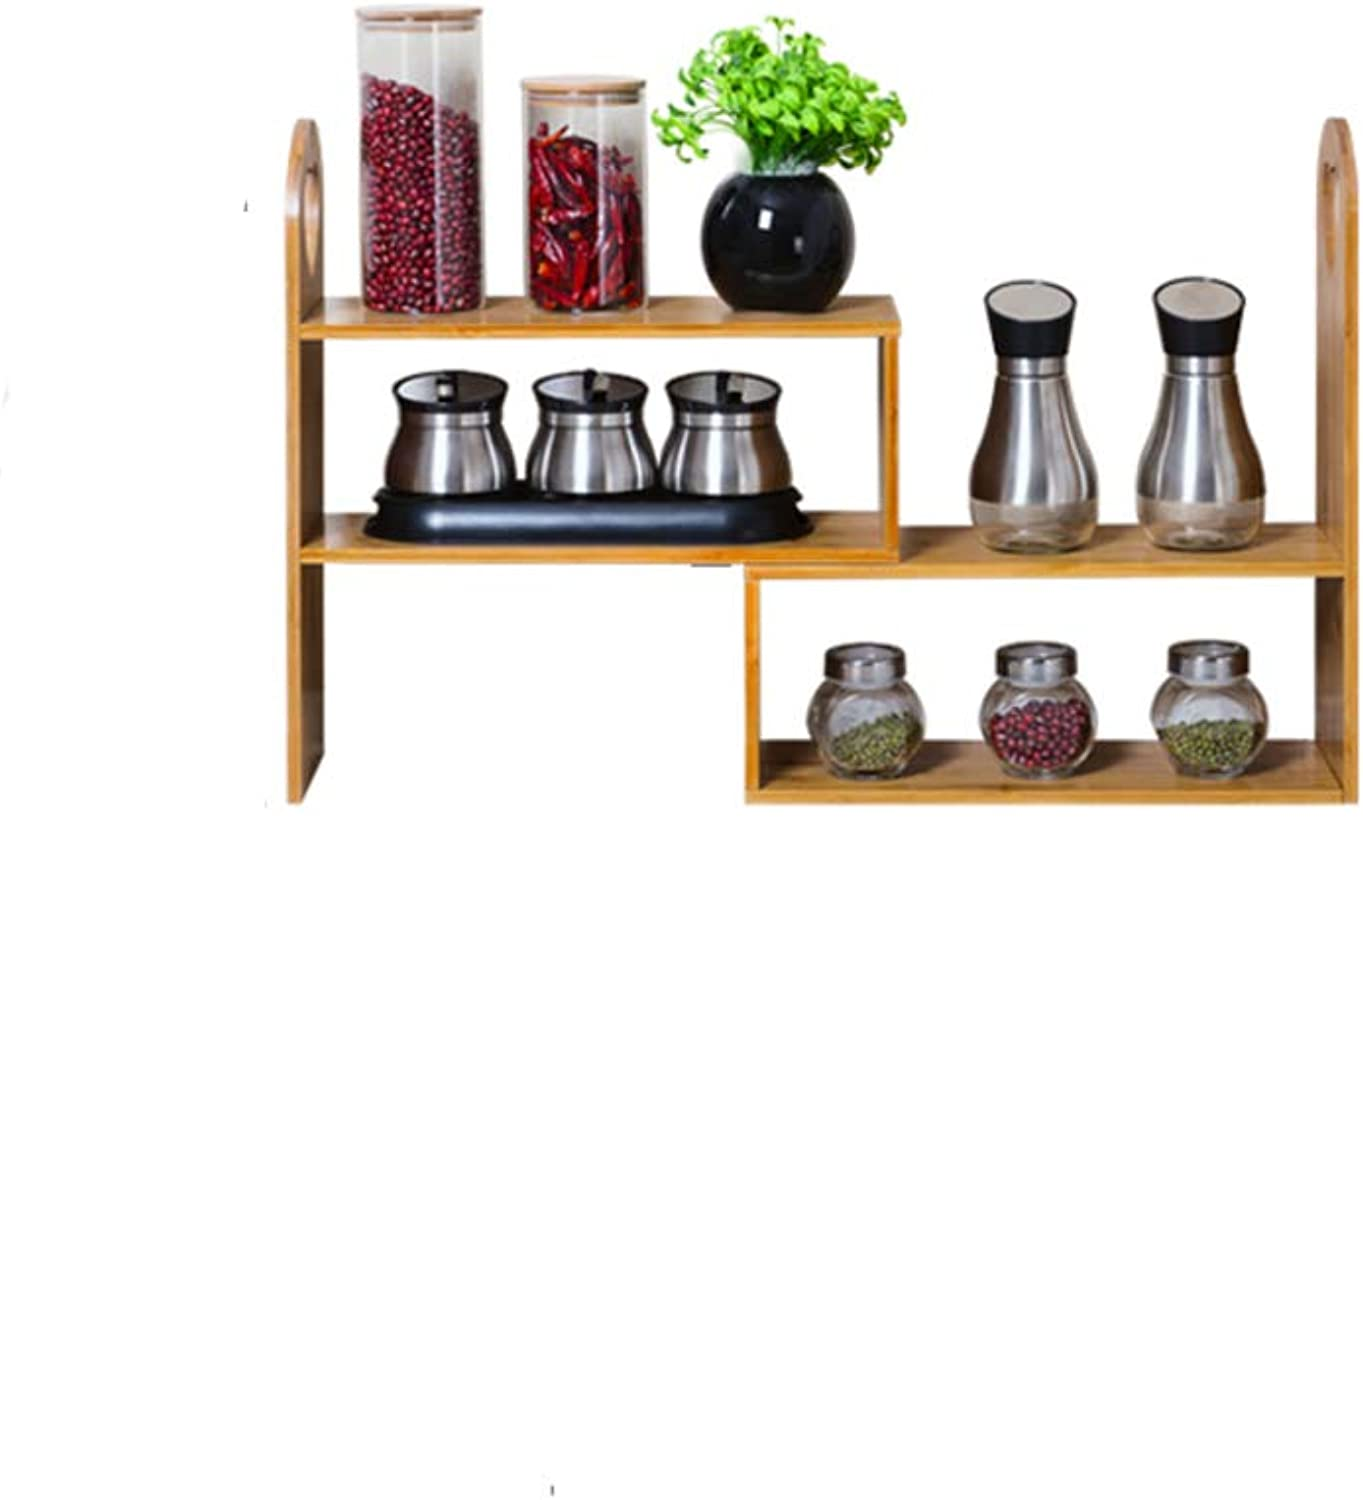 Kitchen Storage Shelf, 3 Ground Study Room Bedroom Living Room Office -A